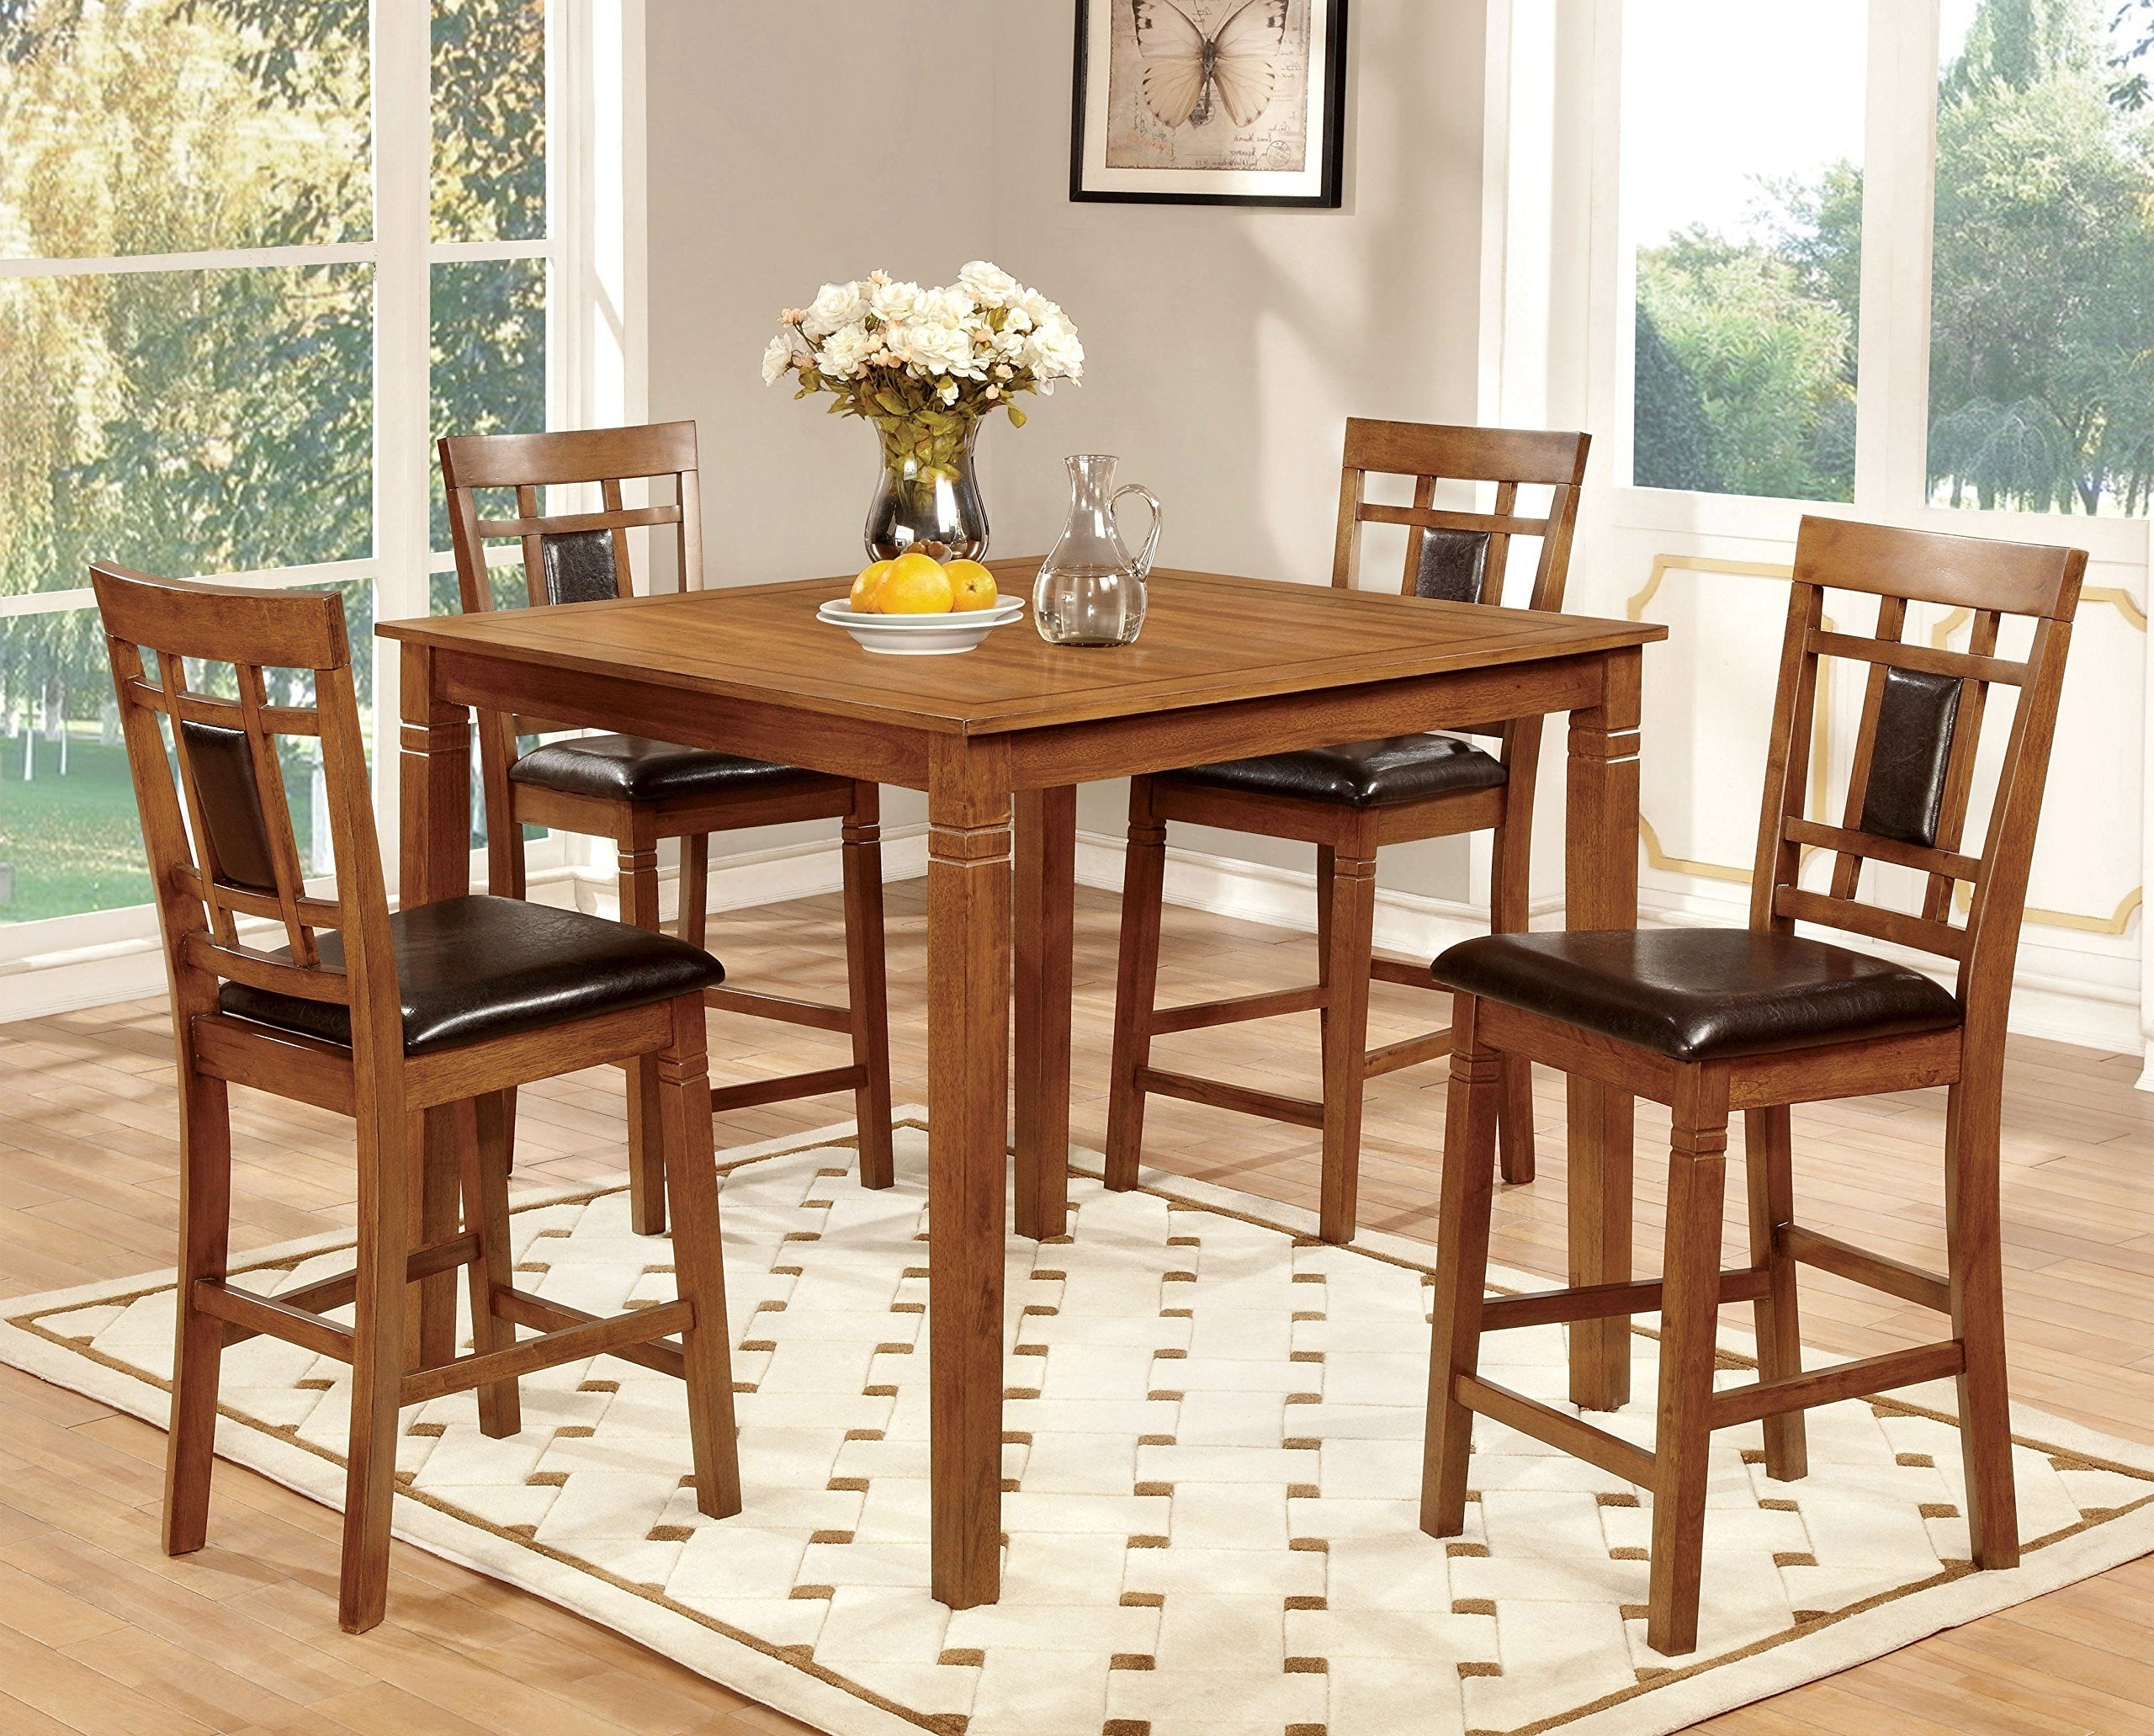 Lazio Dining Tables With Most Up To Date Furniture Of America Lazio 5 Piece Transitional Pub Dining Set (View 14 of 25)